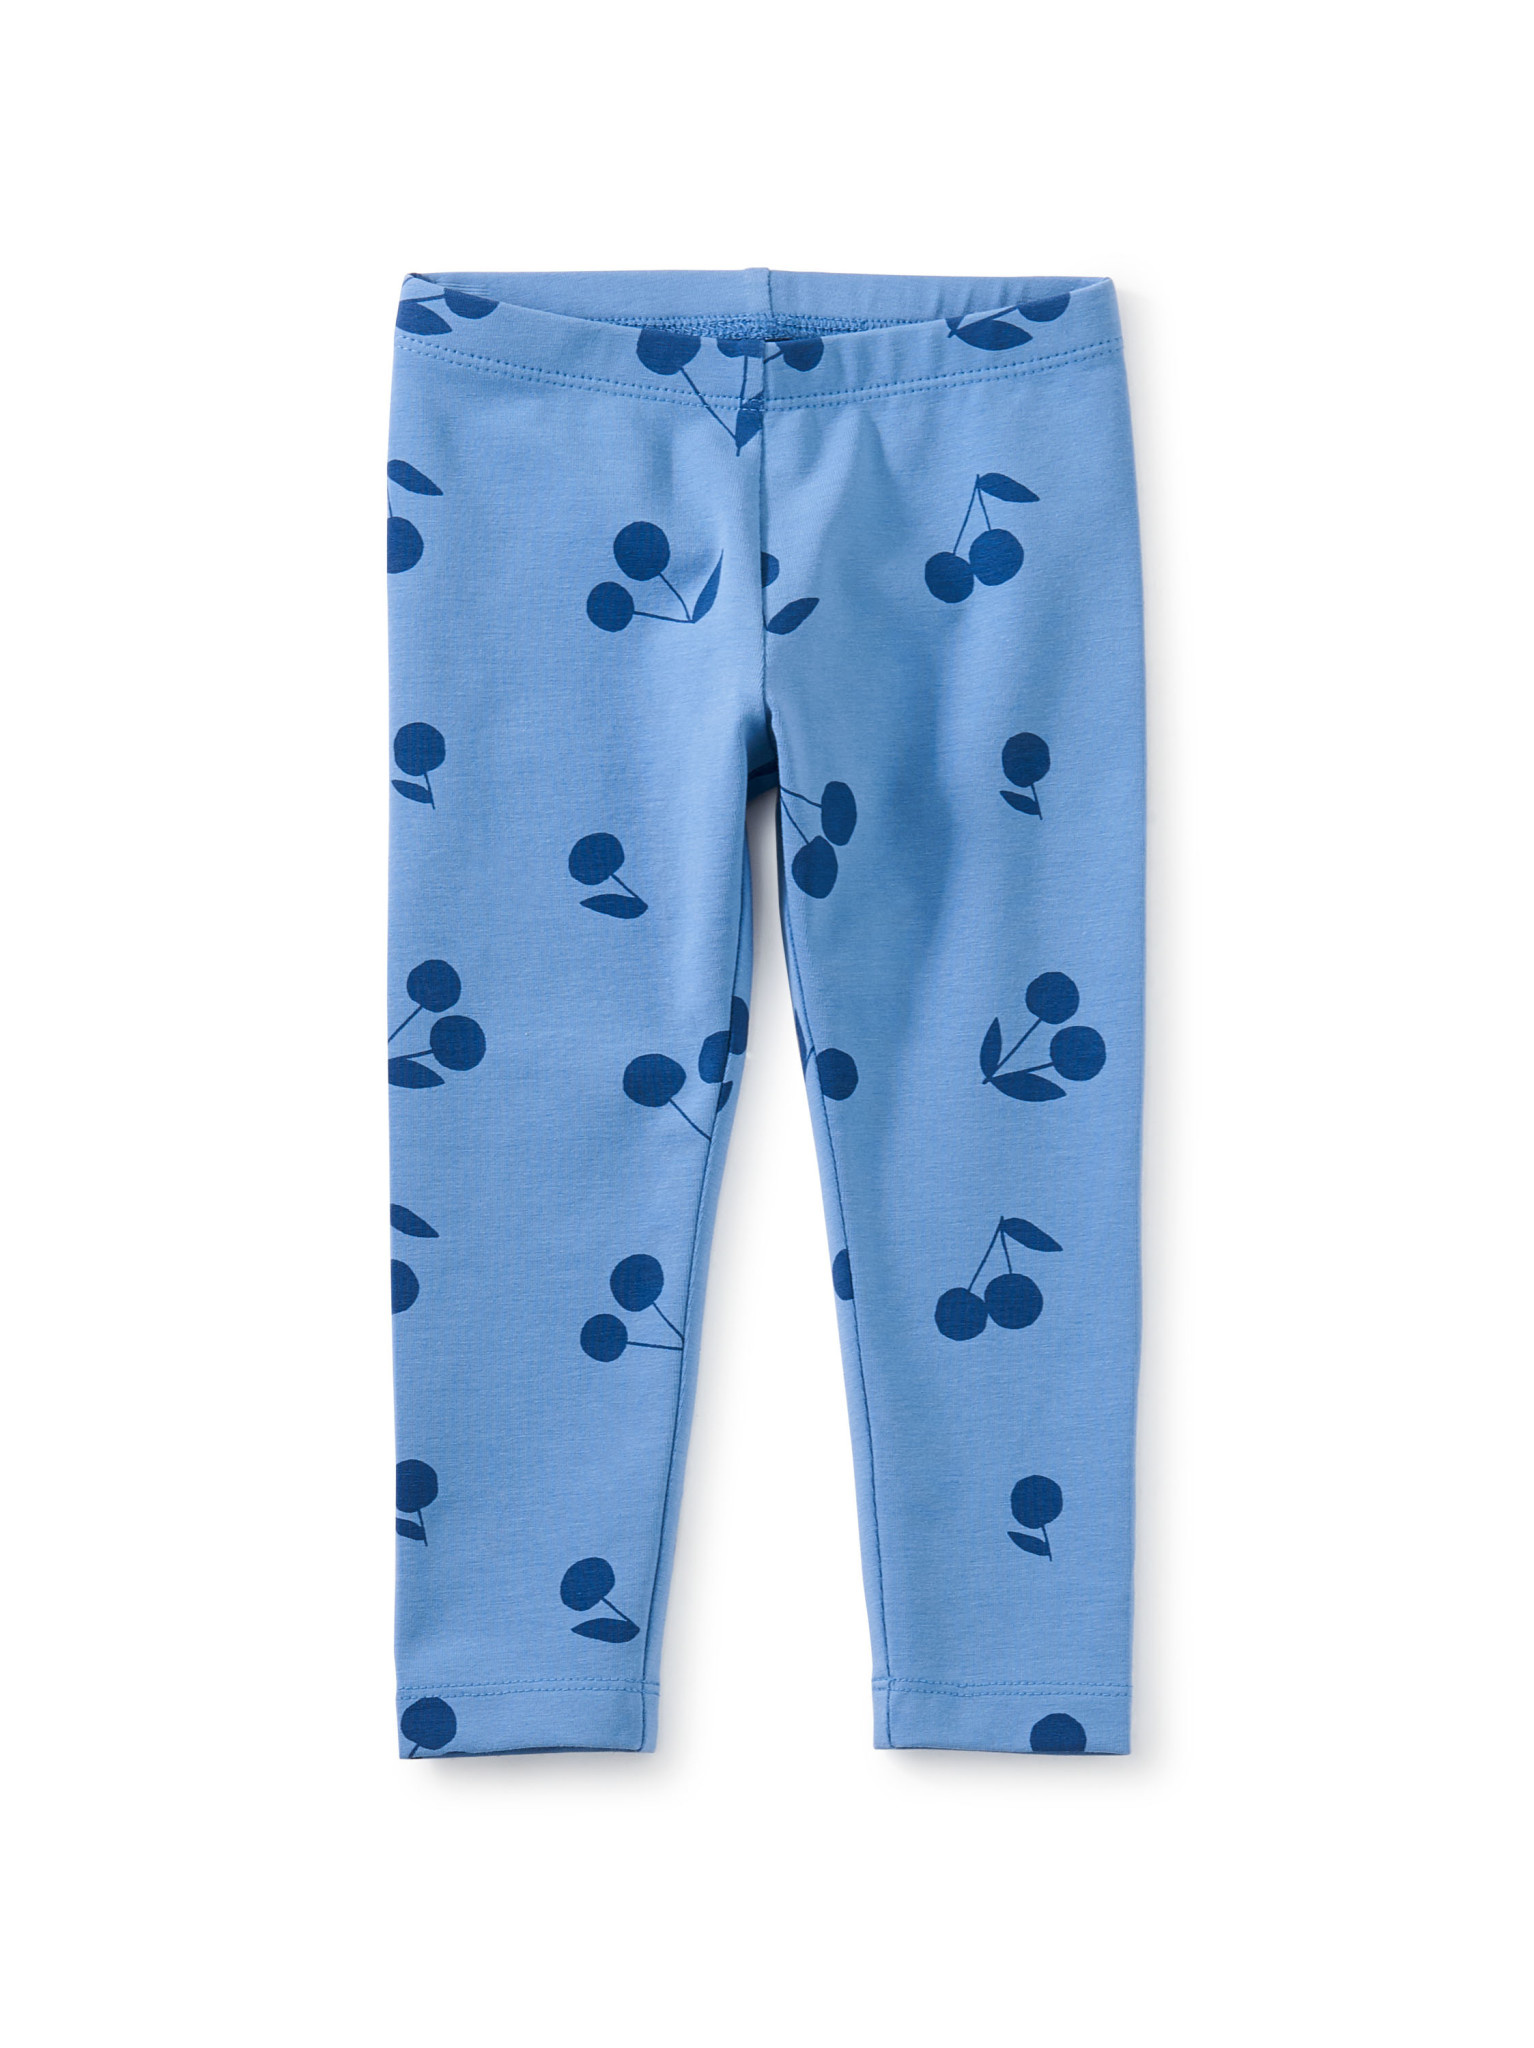 Tea Collection Patterned Baby Leggings- Big Ginja